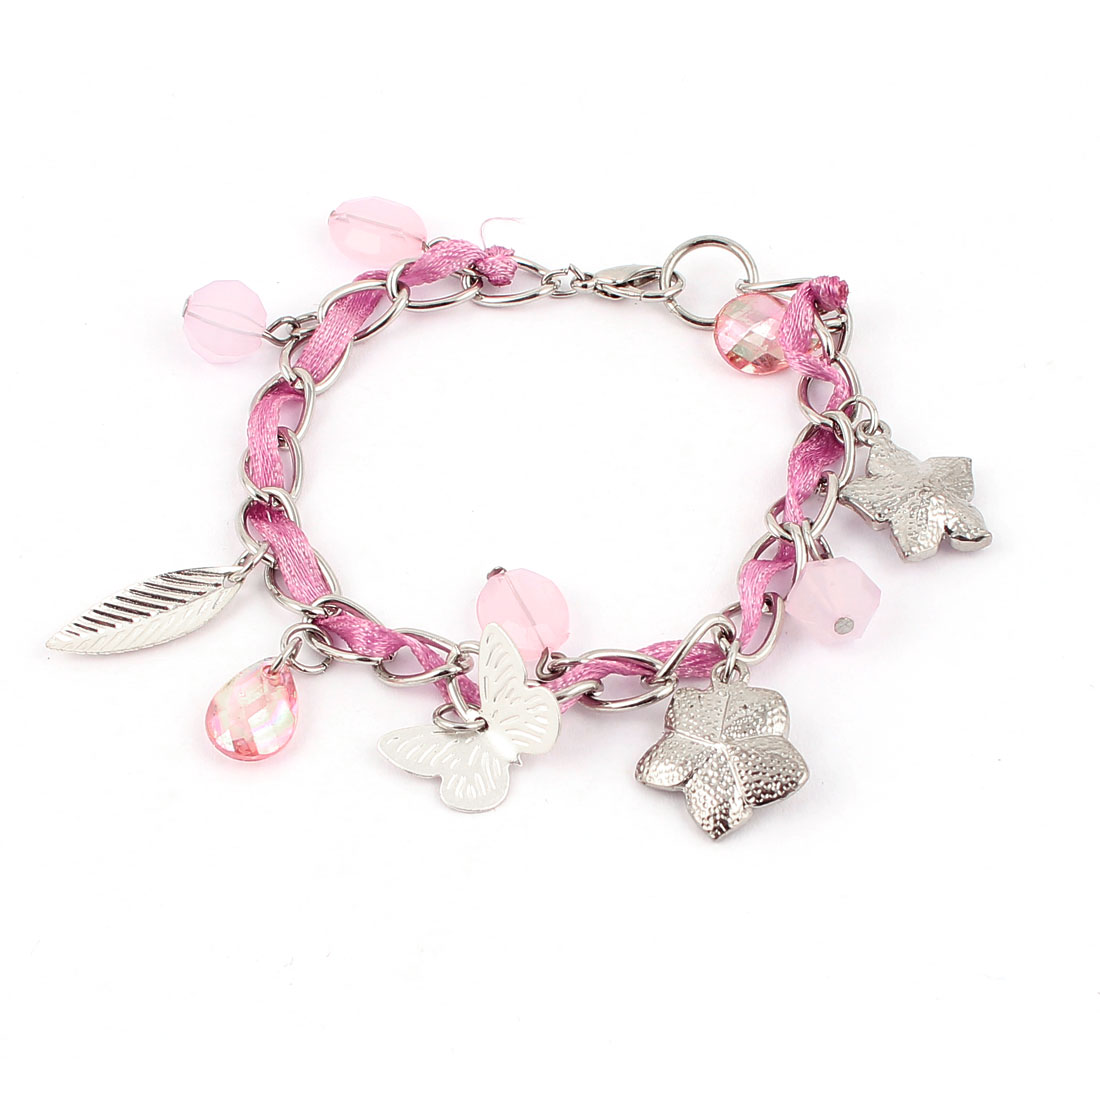 Silver Tone Pink Plastic Rhinestone Leaf Flowers Detail Wrist Decoration Metal Bracelet Bangle for Lady Women